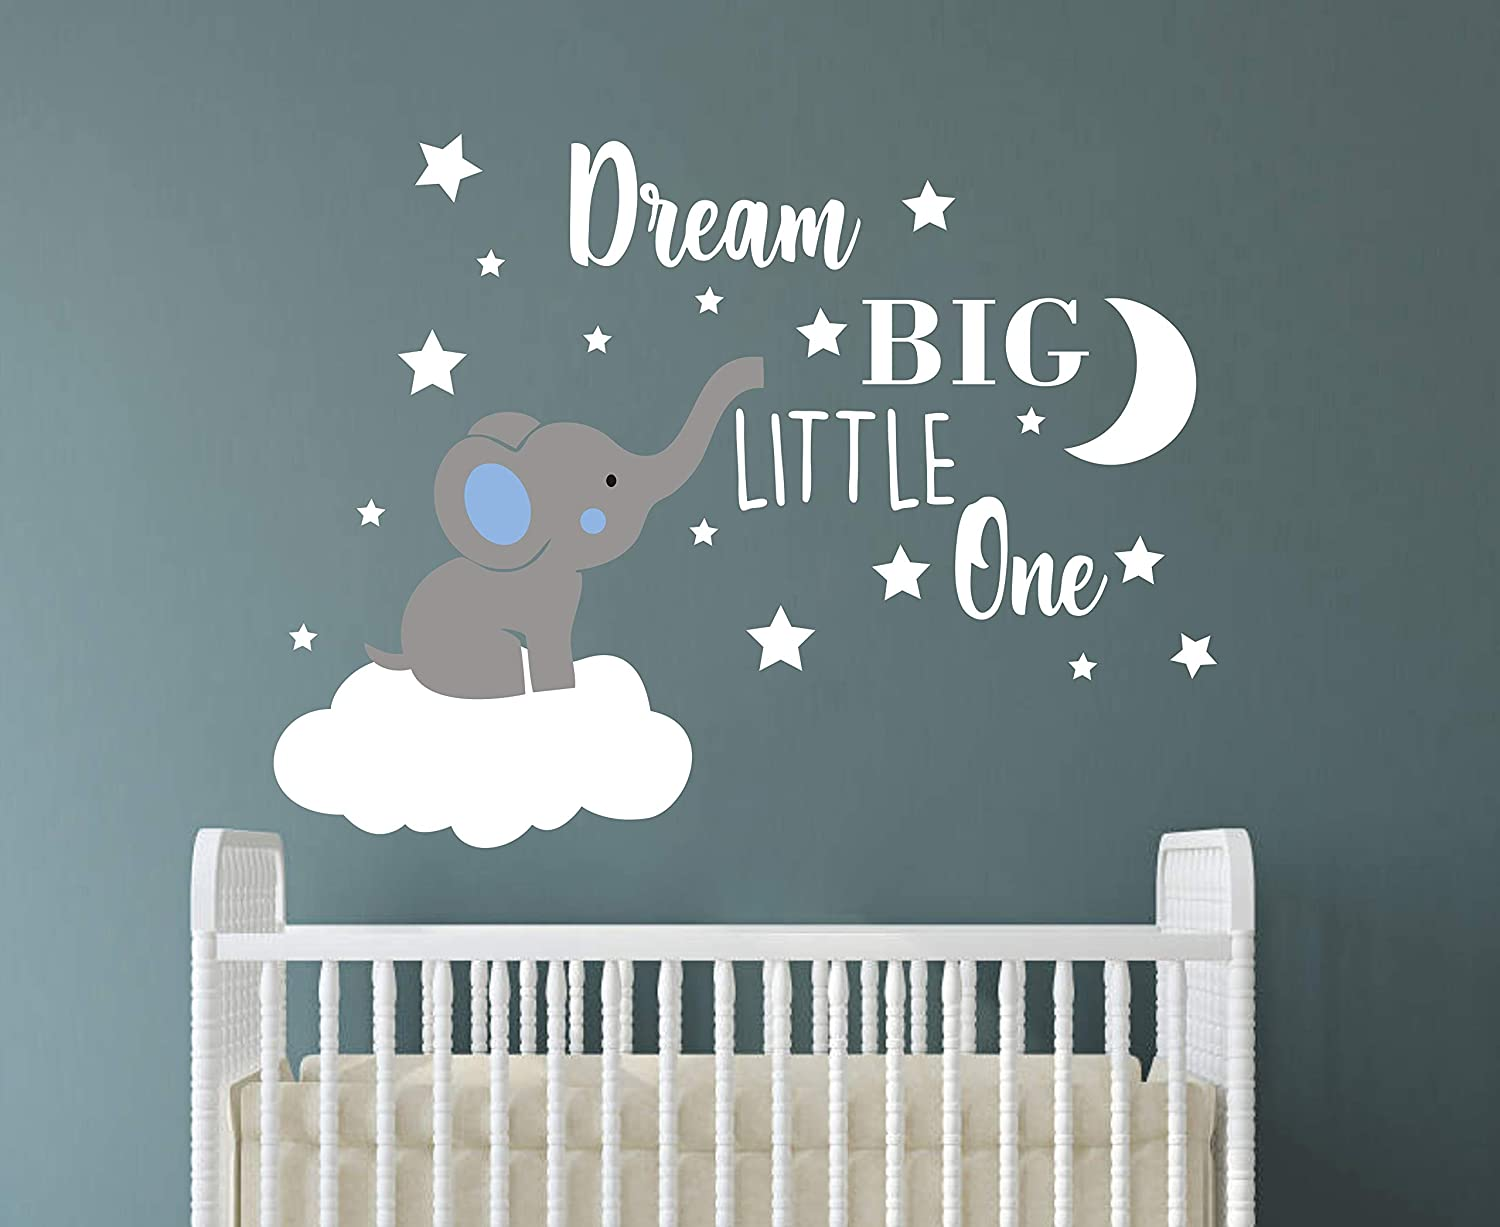 Dream Big Little One Elephant Wall Decal, Quote Wall Stickers, Baby Room  Wall Decor, Vinyl Wall Decals for Children Baby Kids Boy Girl Bedroom  Nursery